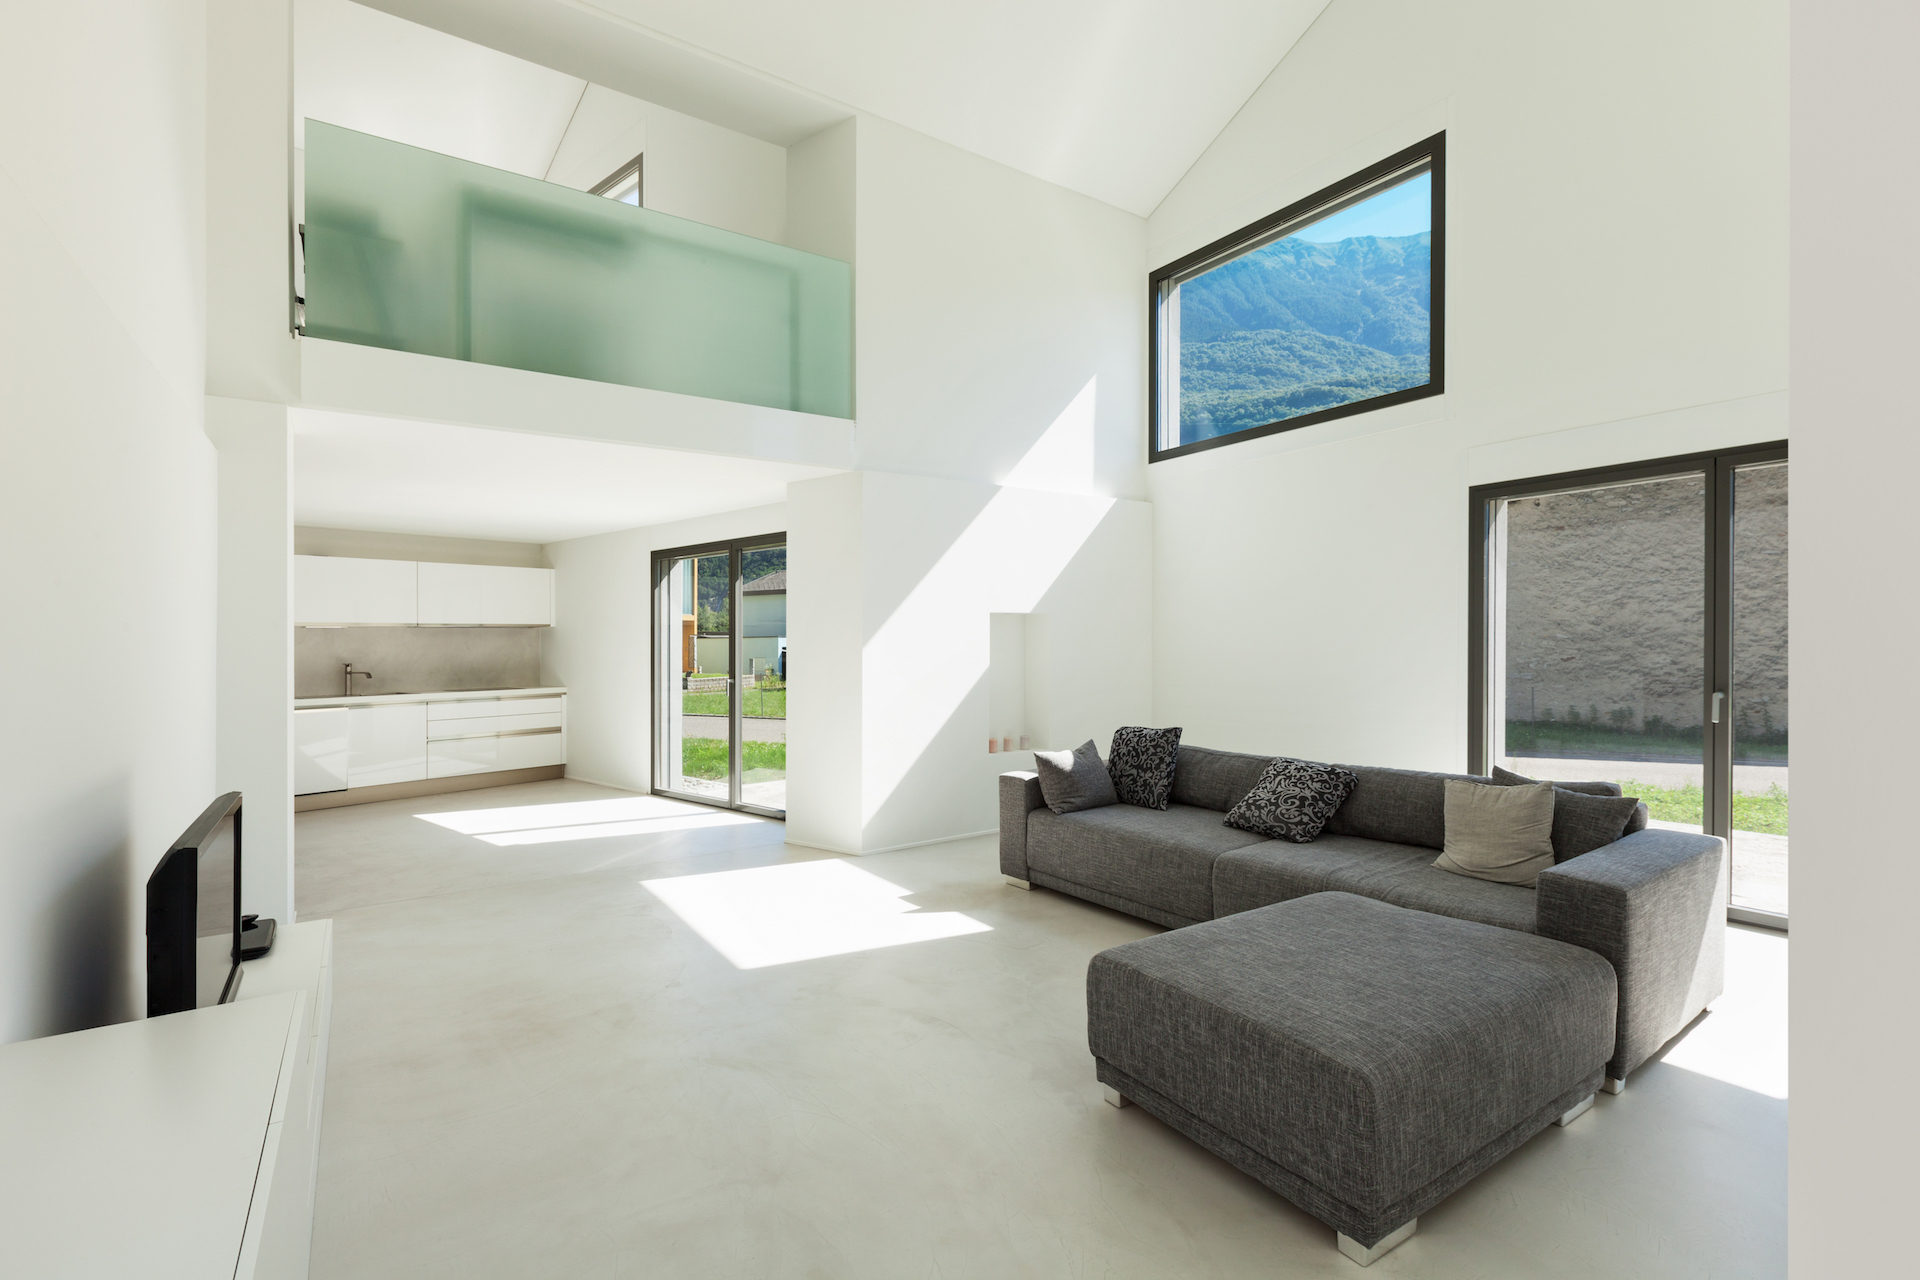 Diseñador de Interiores | architrendy